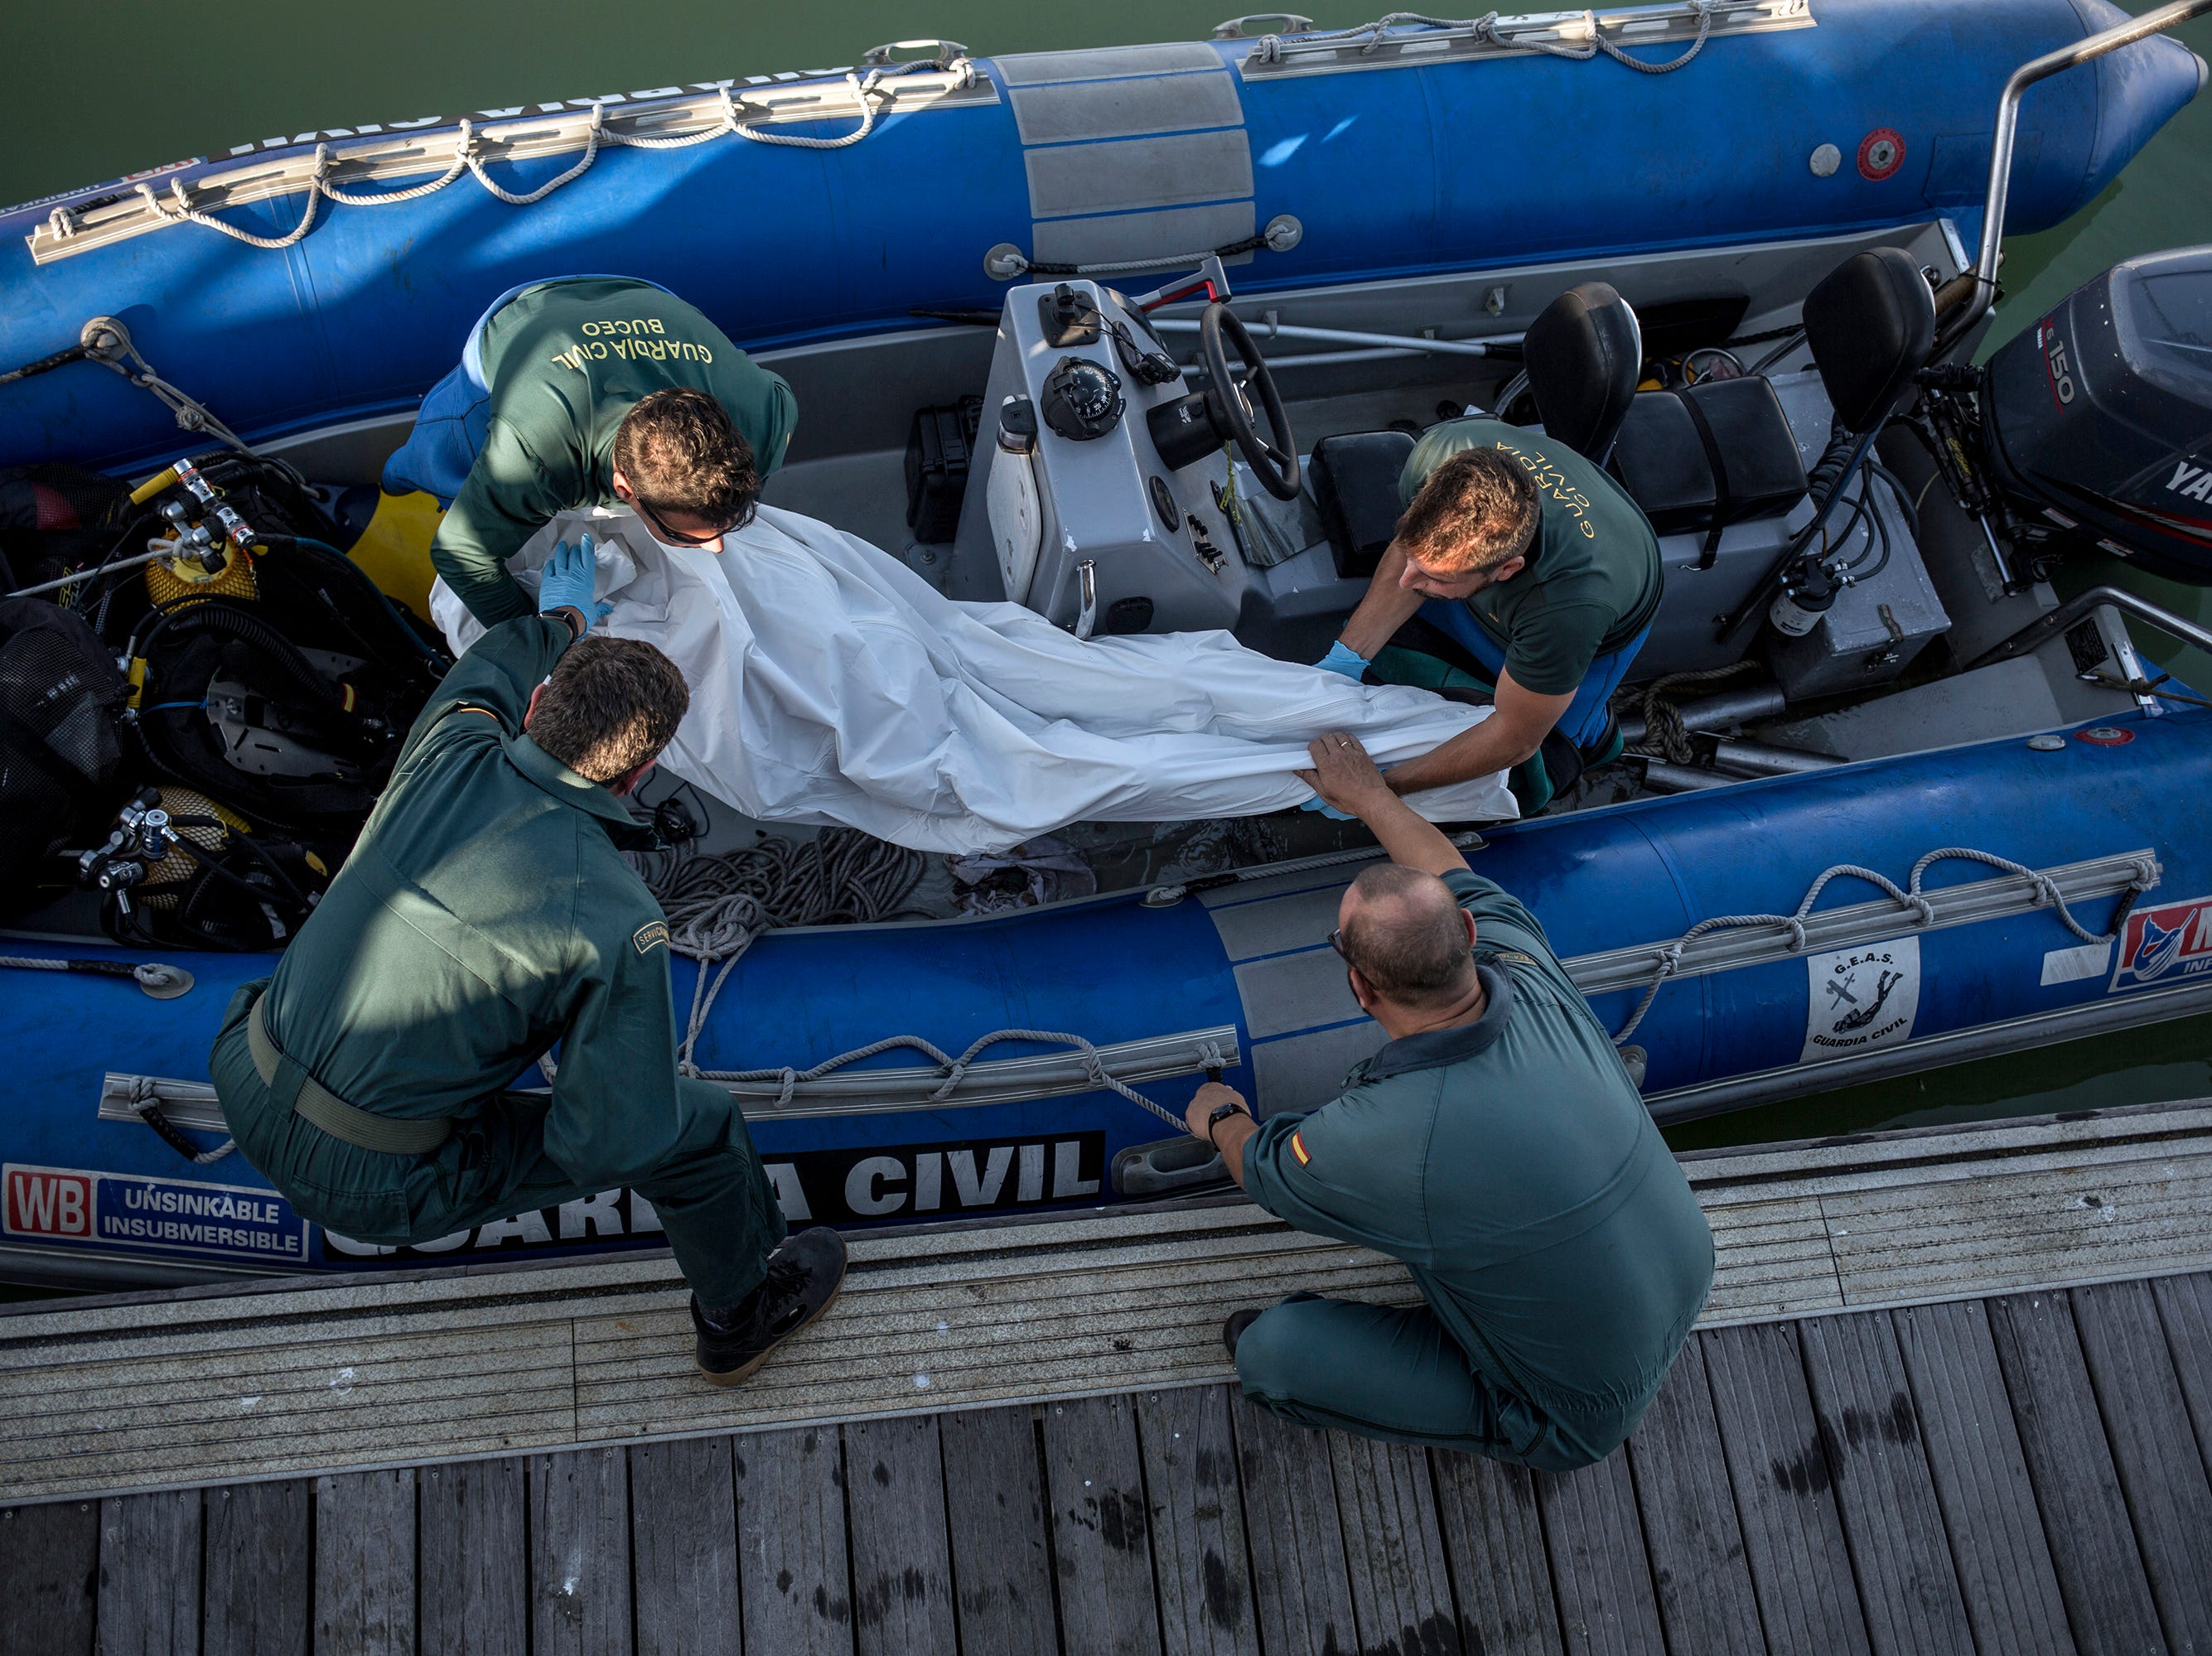 Members of the Spanish civil guard unload the remains of a migrant that was recovered off the coast off Barbate, Spain, Tuesday, Nov. 6 2018. Spain's maritime rescue service says at least 17 people have died trying to reach Spanish territory in boats departing from North Africa.